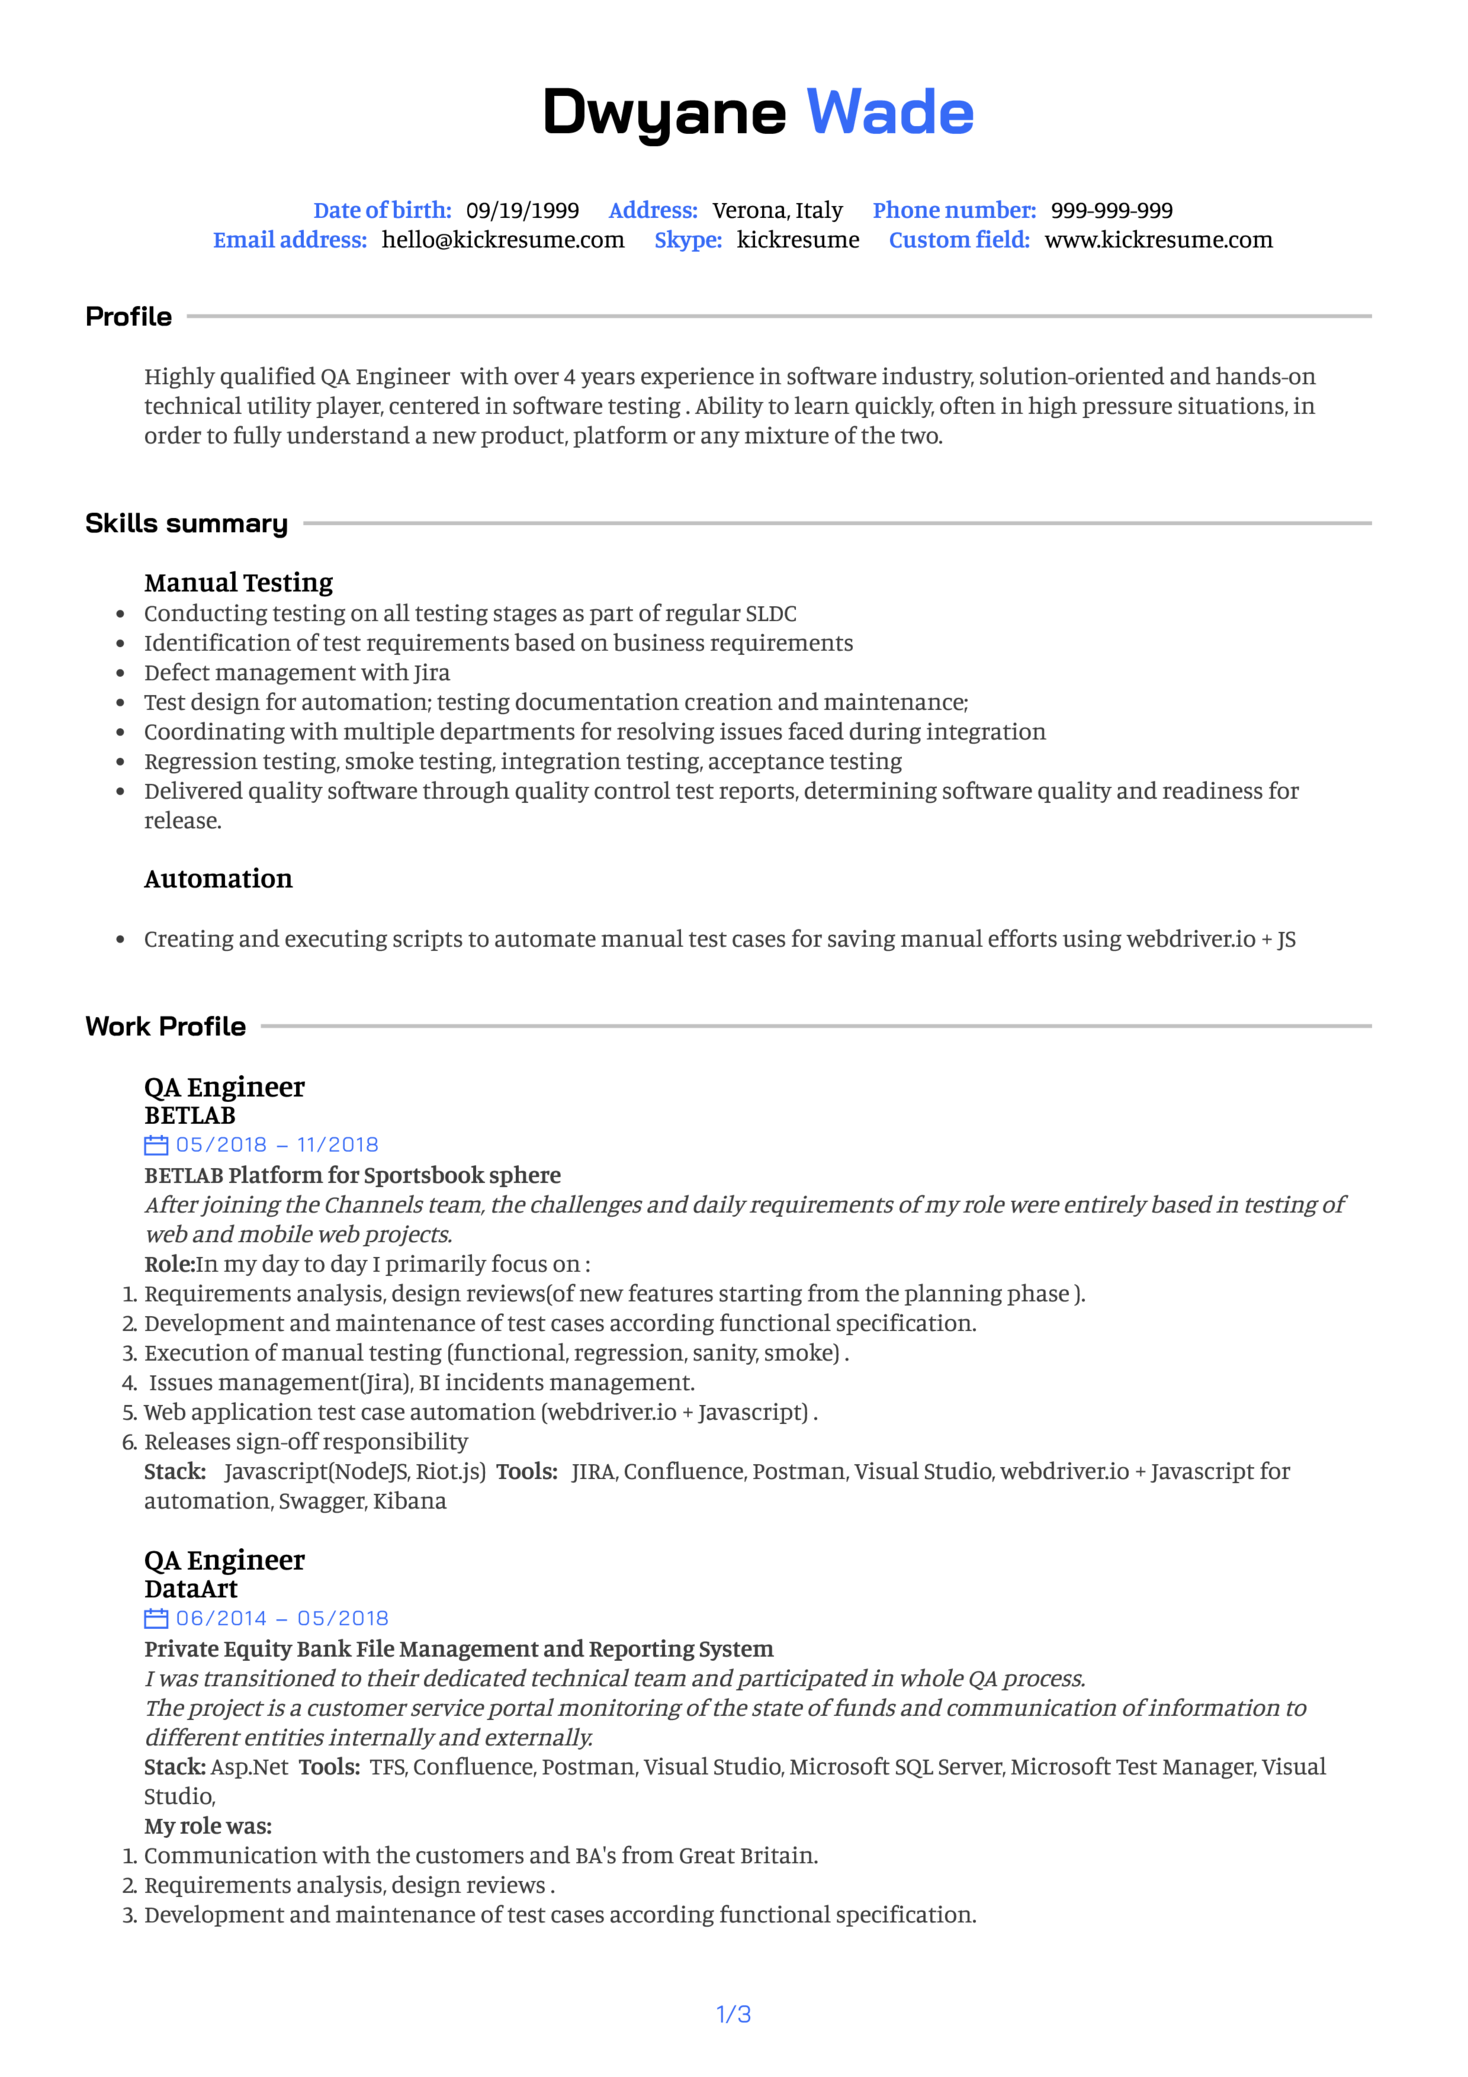 Quality Assurance Engineer Resume Example Kickresume